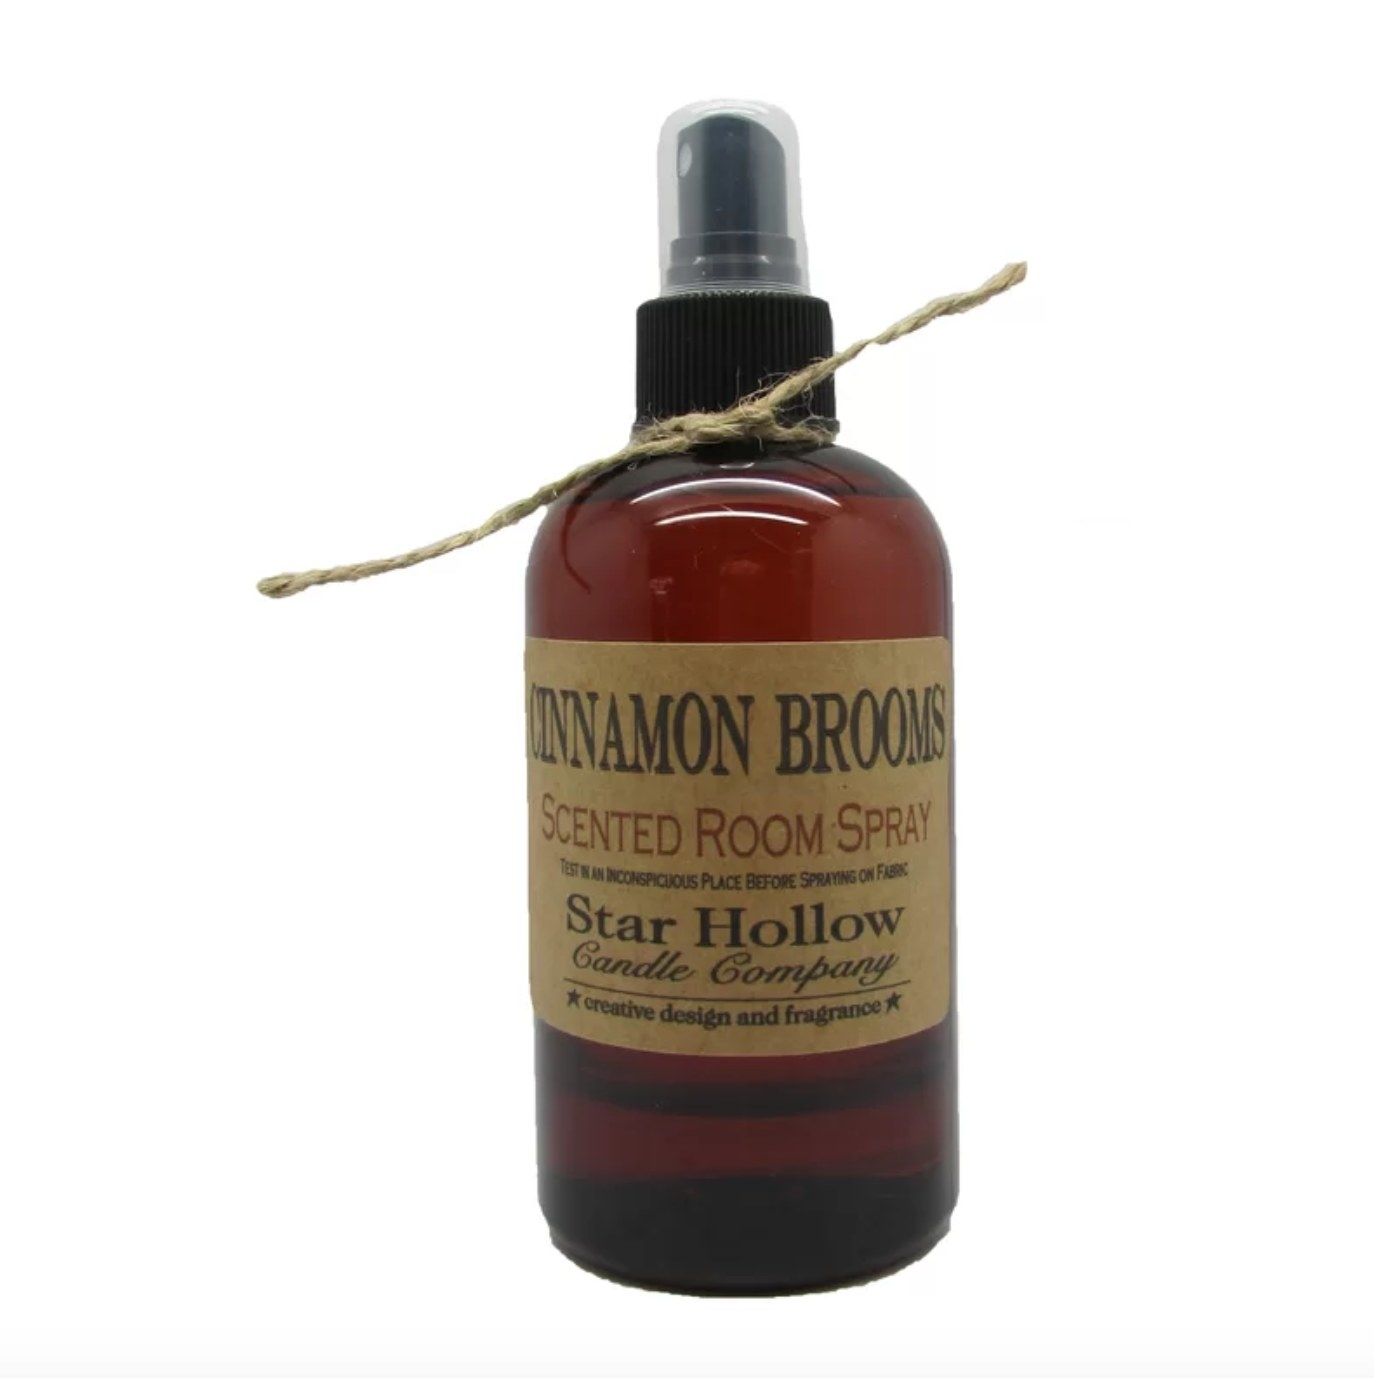 The cinnamon broom room spray in brown with twine decor